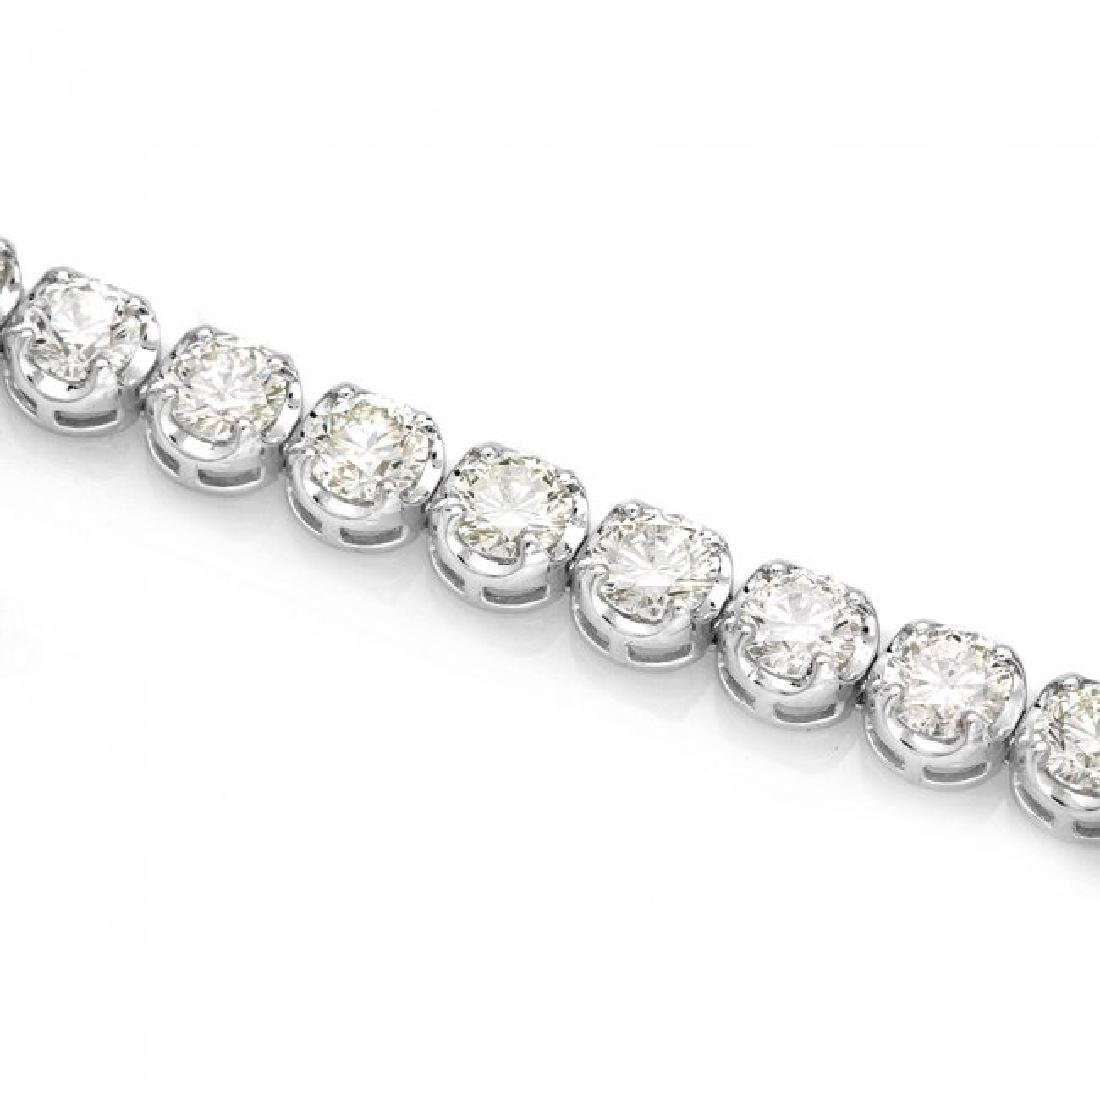 18k White Gold 9.00ct Diamond Tennis Bracelet - 3